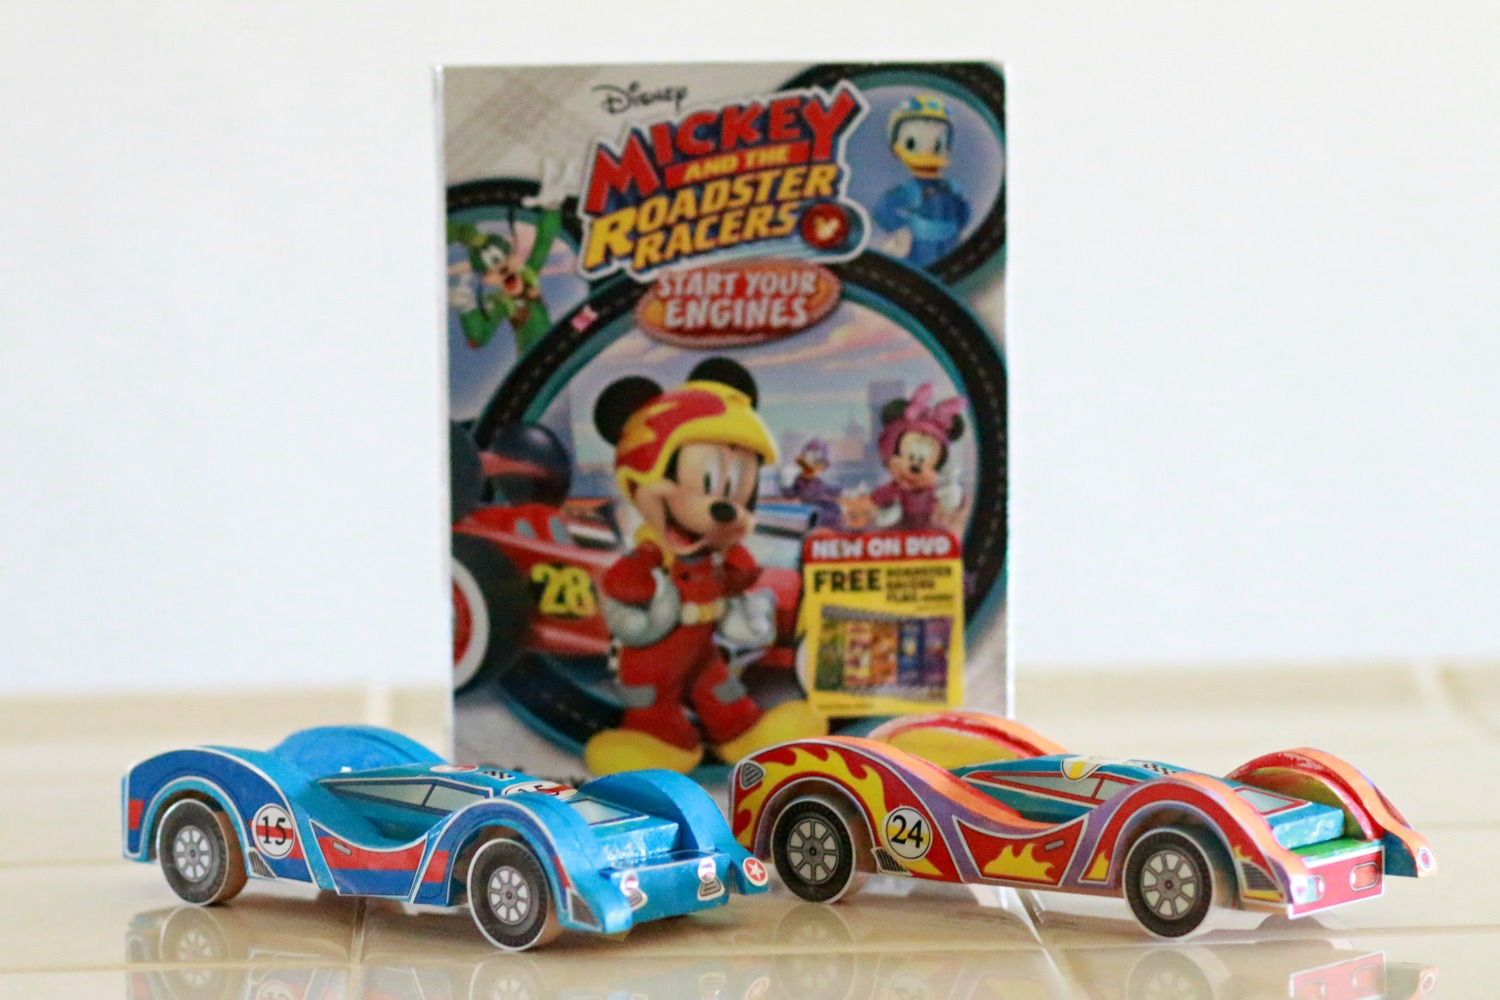 Construyendo carritos con Mickey and the Roadster Racers ... |Start Your Engines Racers